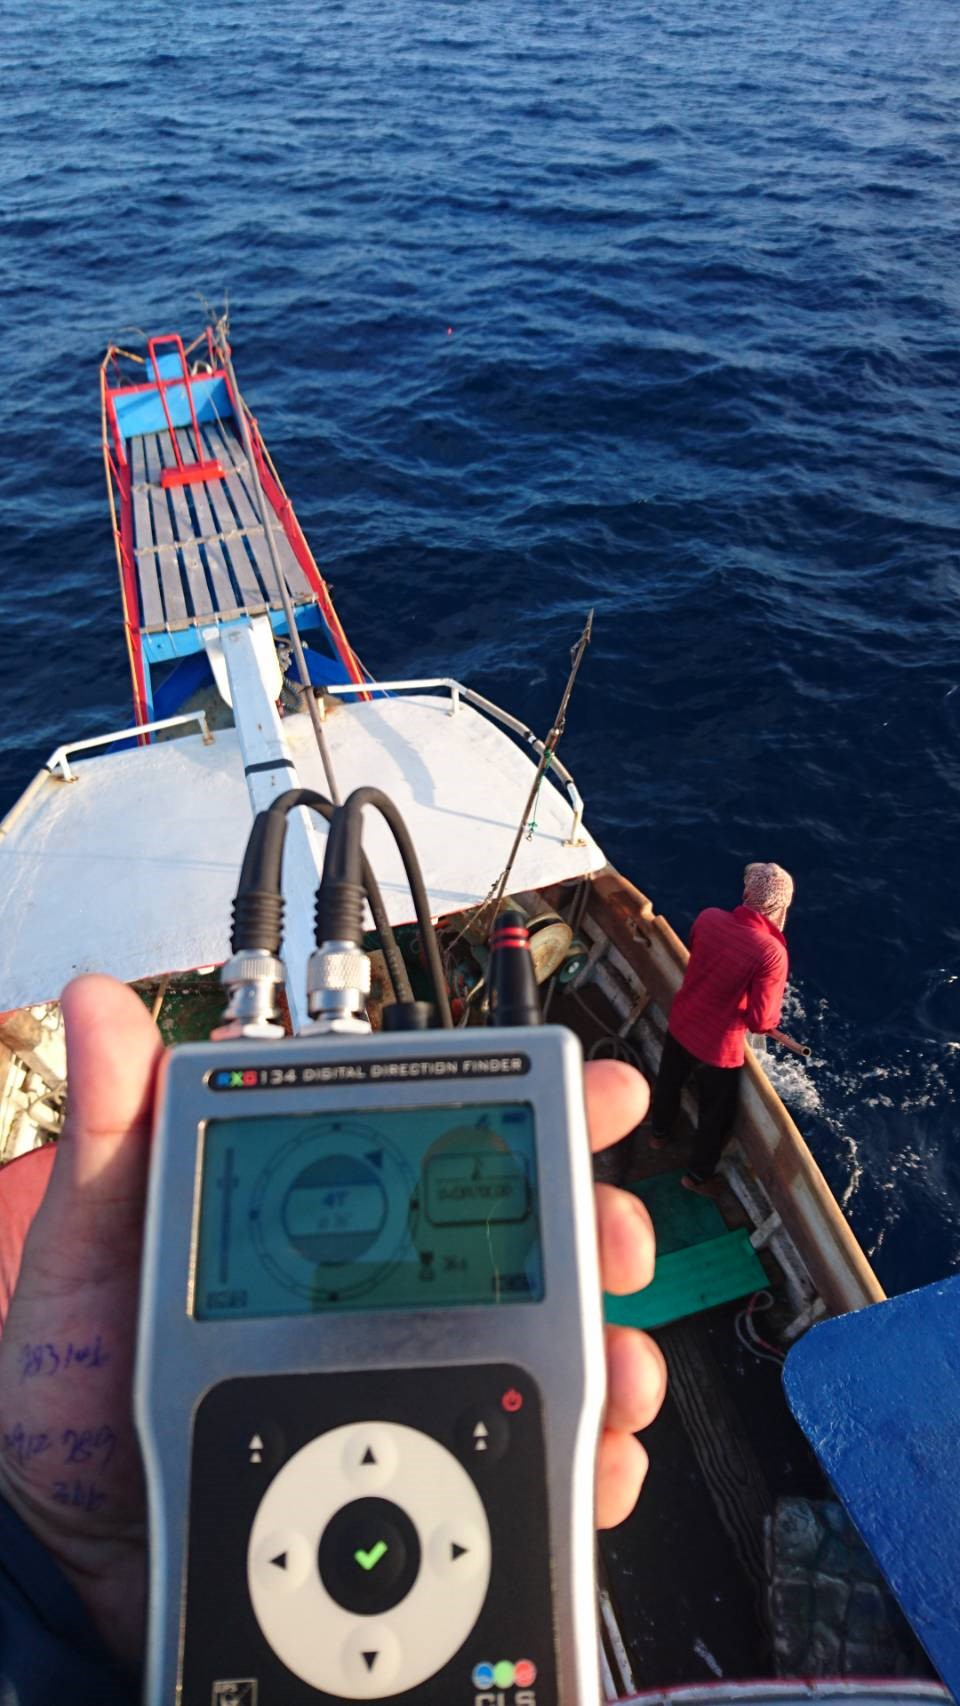 The goniometer screen, having found the tag signal. Credits Tuna and Billfish Tagging Project in Taiwan